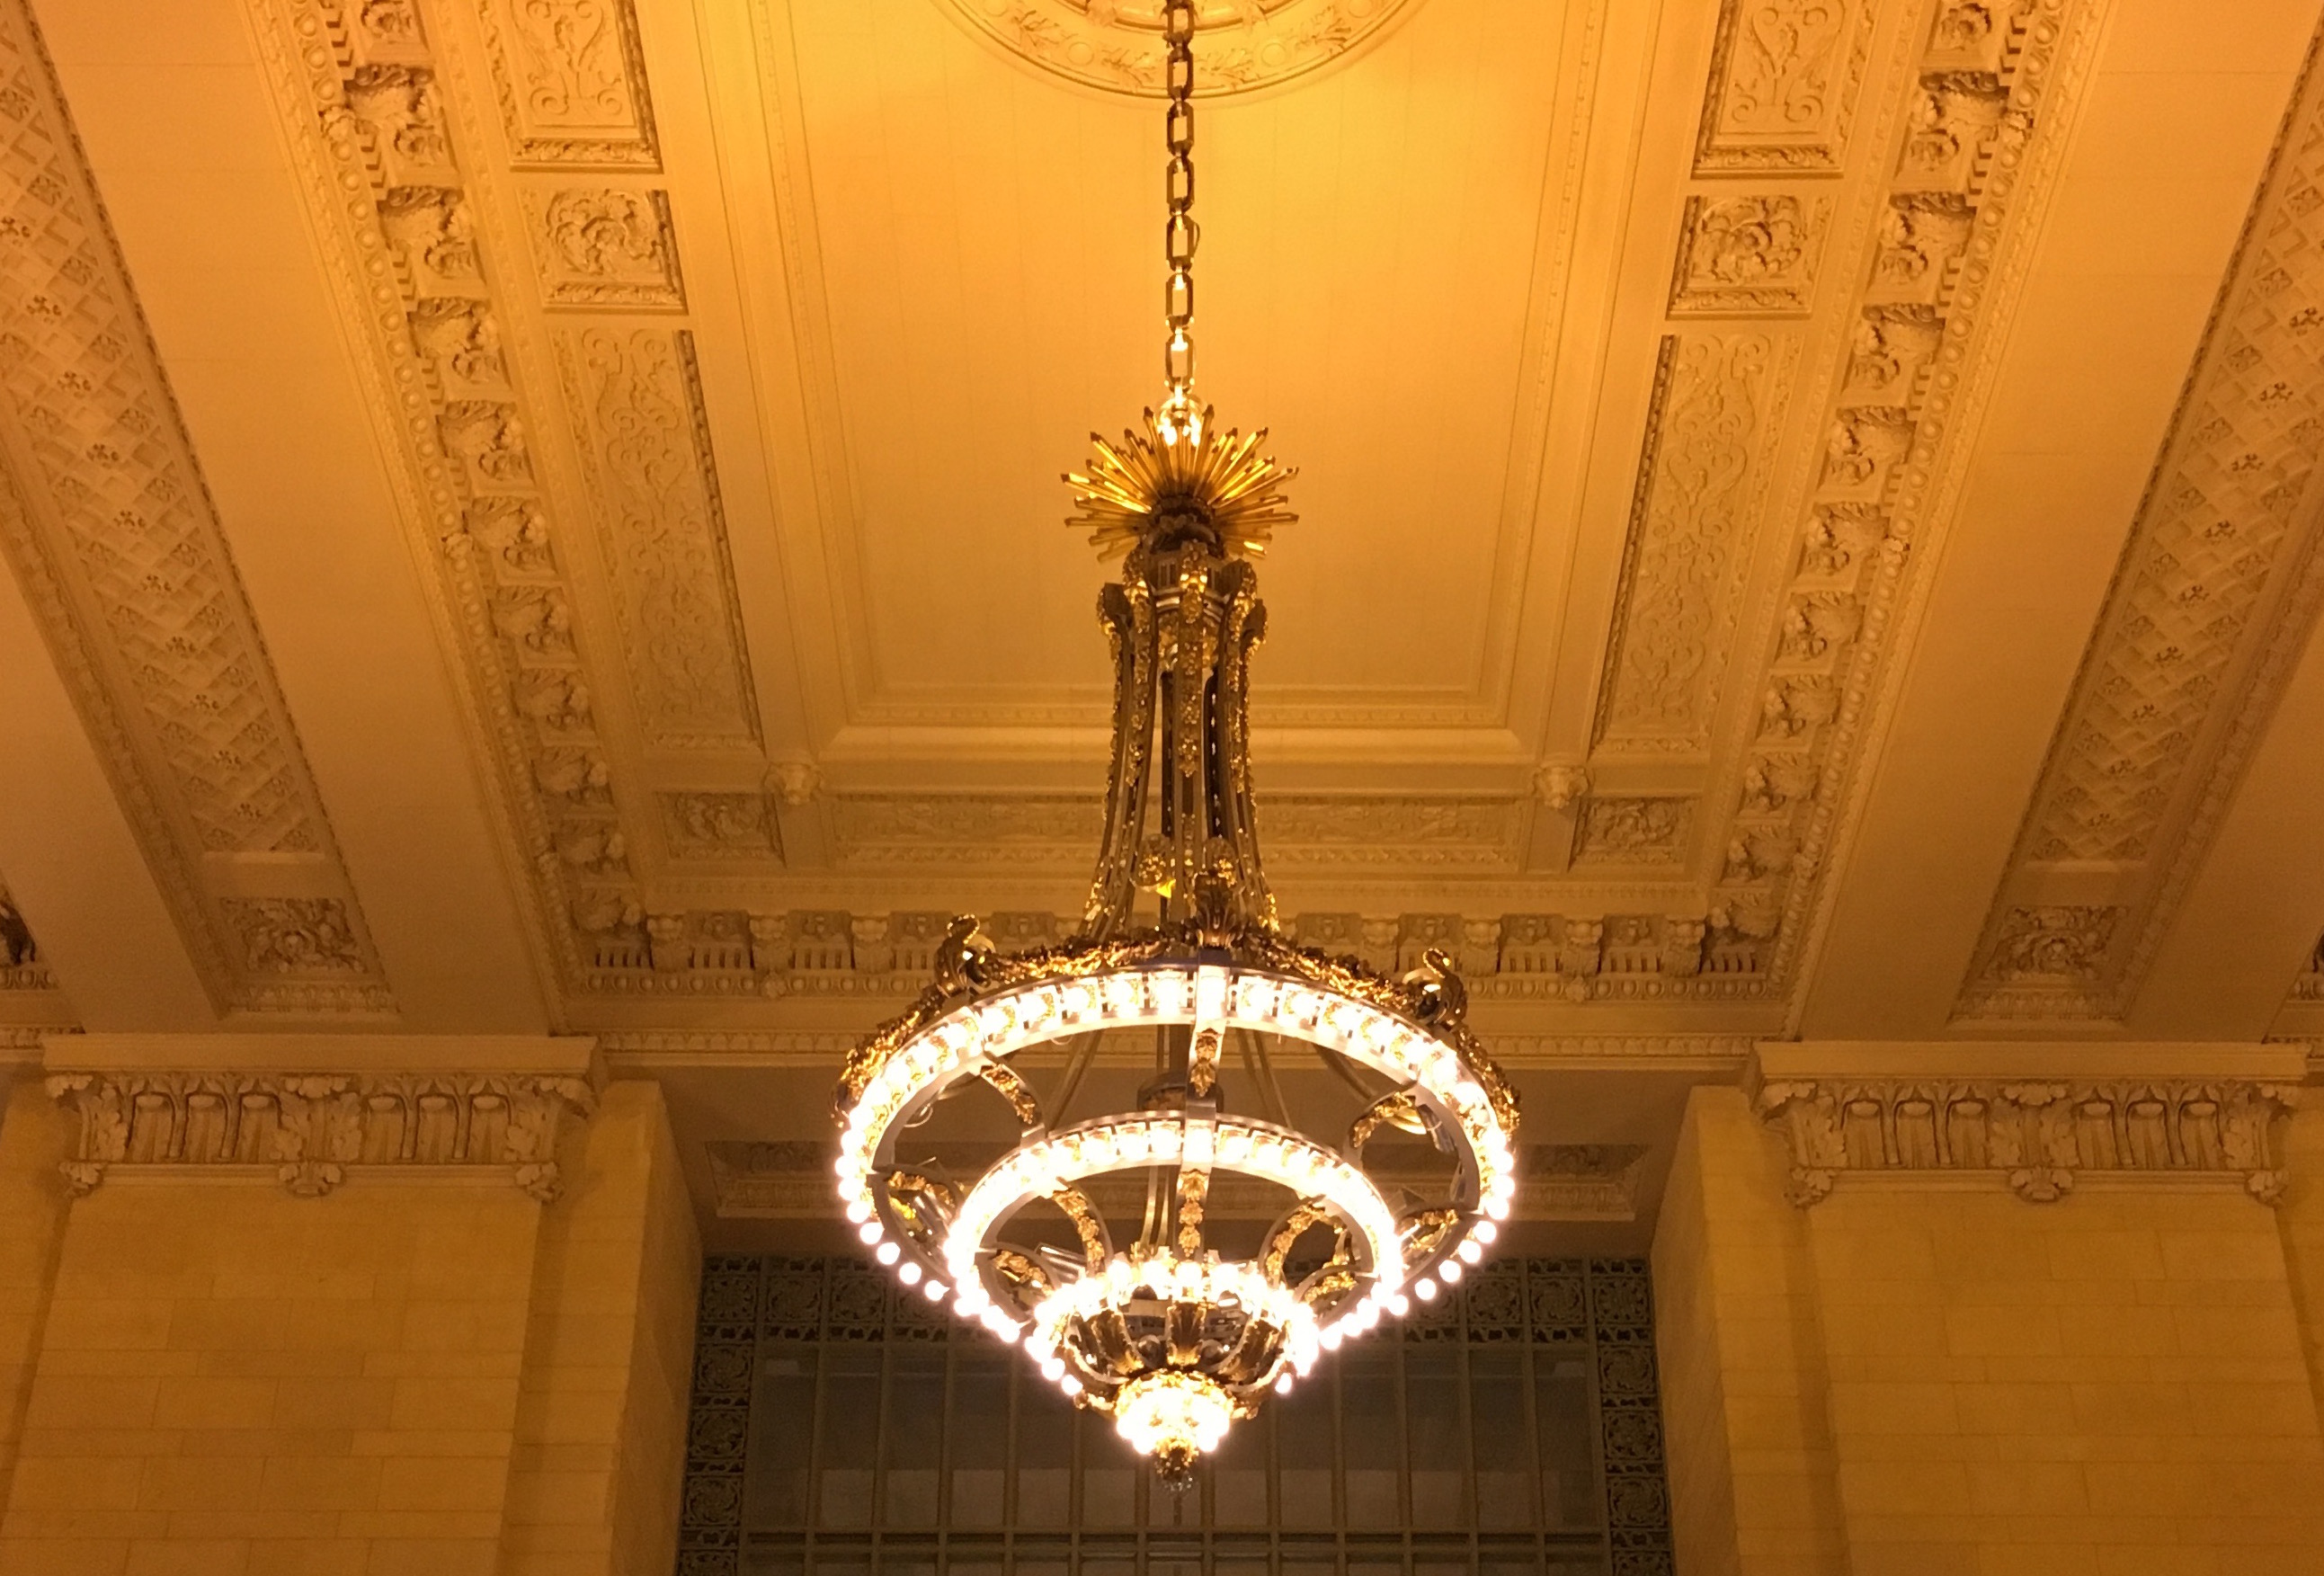 The meaning behind Grand Central s chandeliers